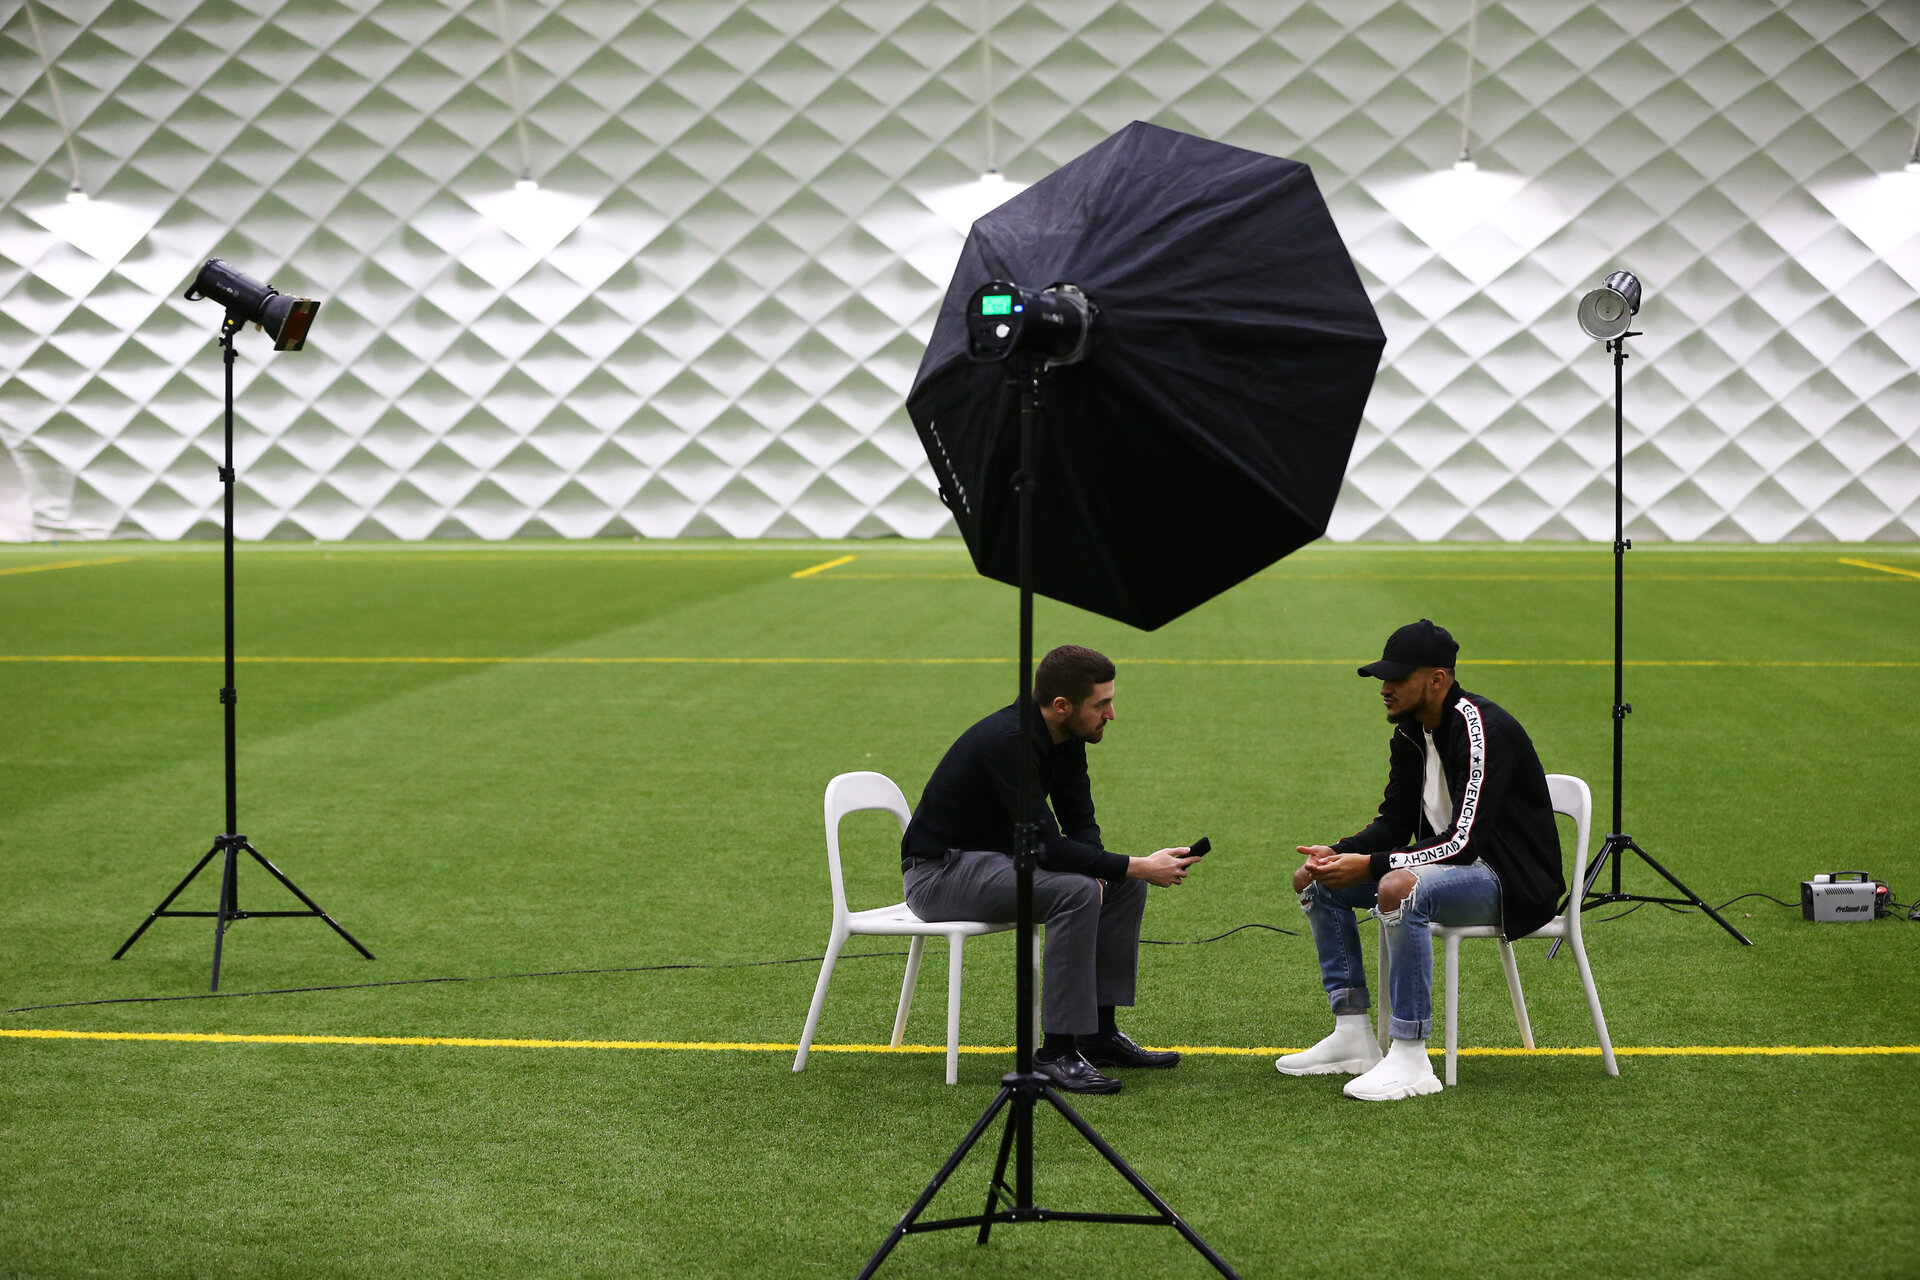 SOUTHAMPTON, ENGLAND - JANUARY 11: Sofiane Boufal behind the scenes during a Match Day Program shoot at Staplewood Complex on January 11, 2018 in Southampton, England. (Photo by James Bridle - Southampton FC/Southampton FC via Getty Images)